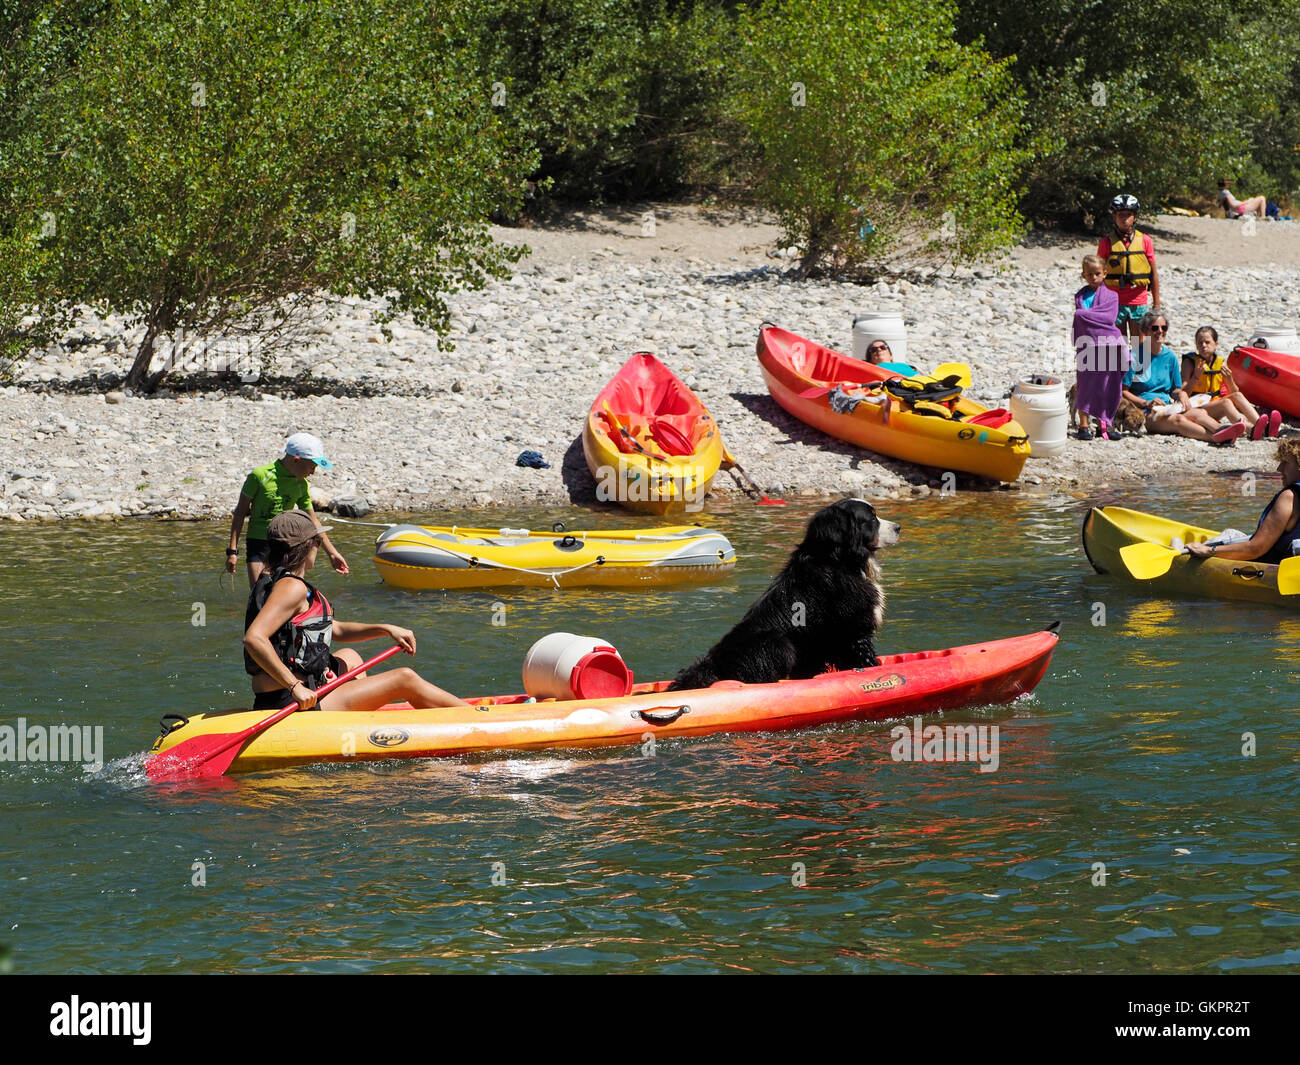 Even dogs go on a canoe trip in France, this is the Herault river in the Cevennes region. - Stock Image